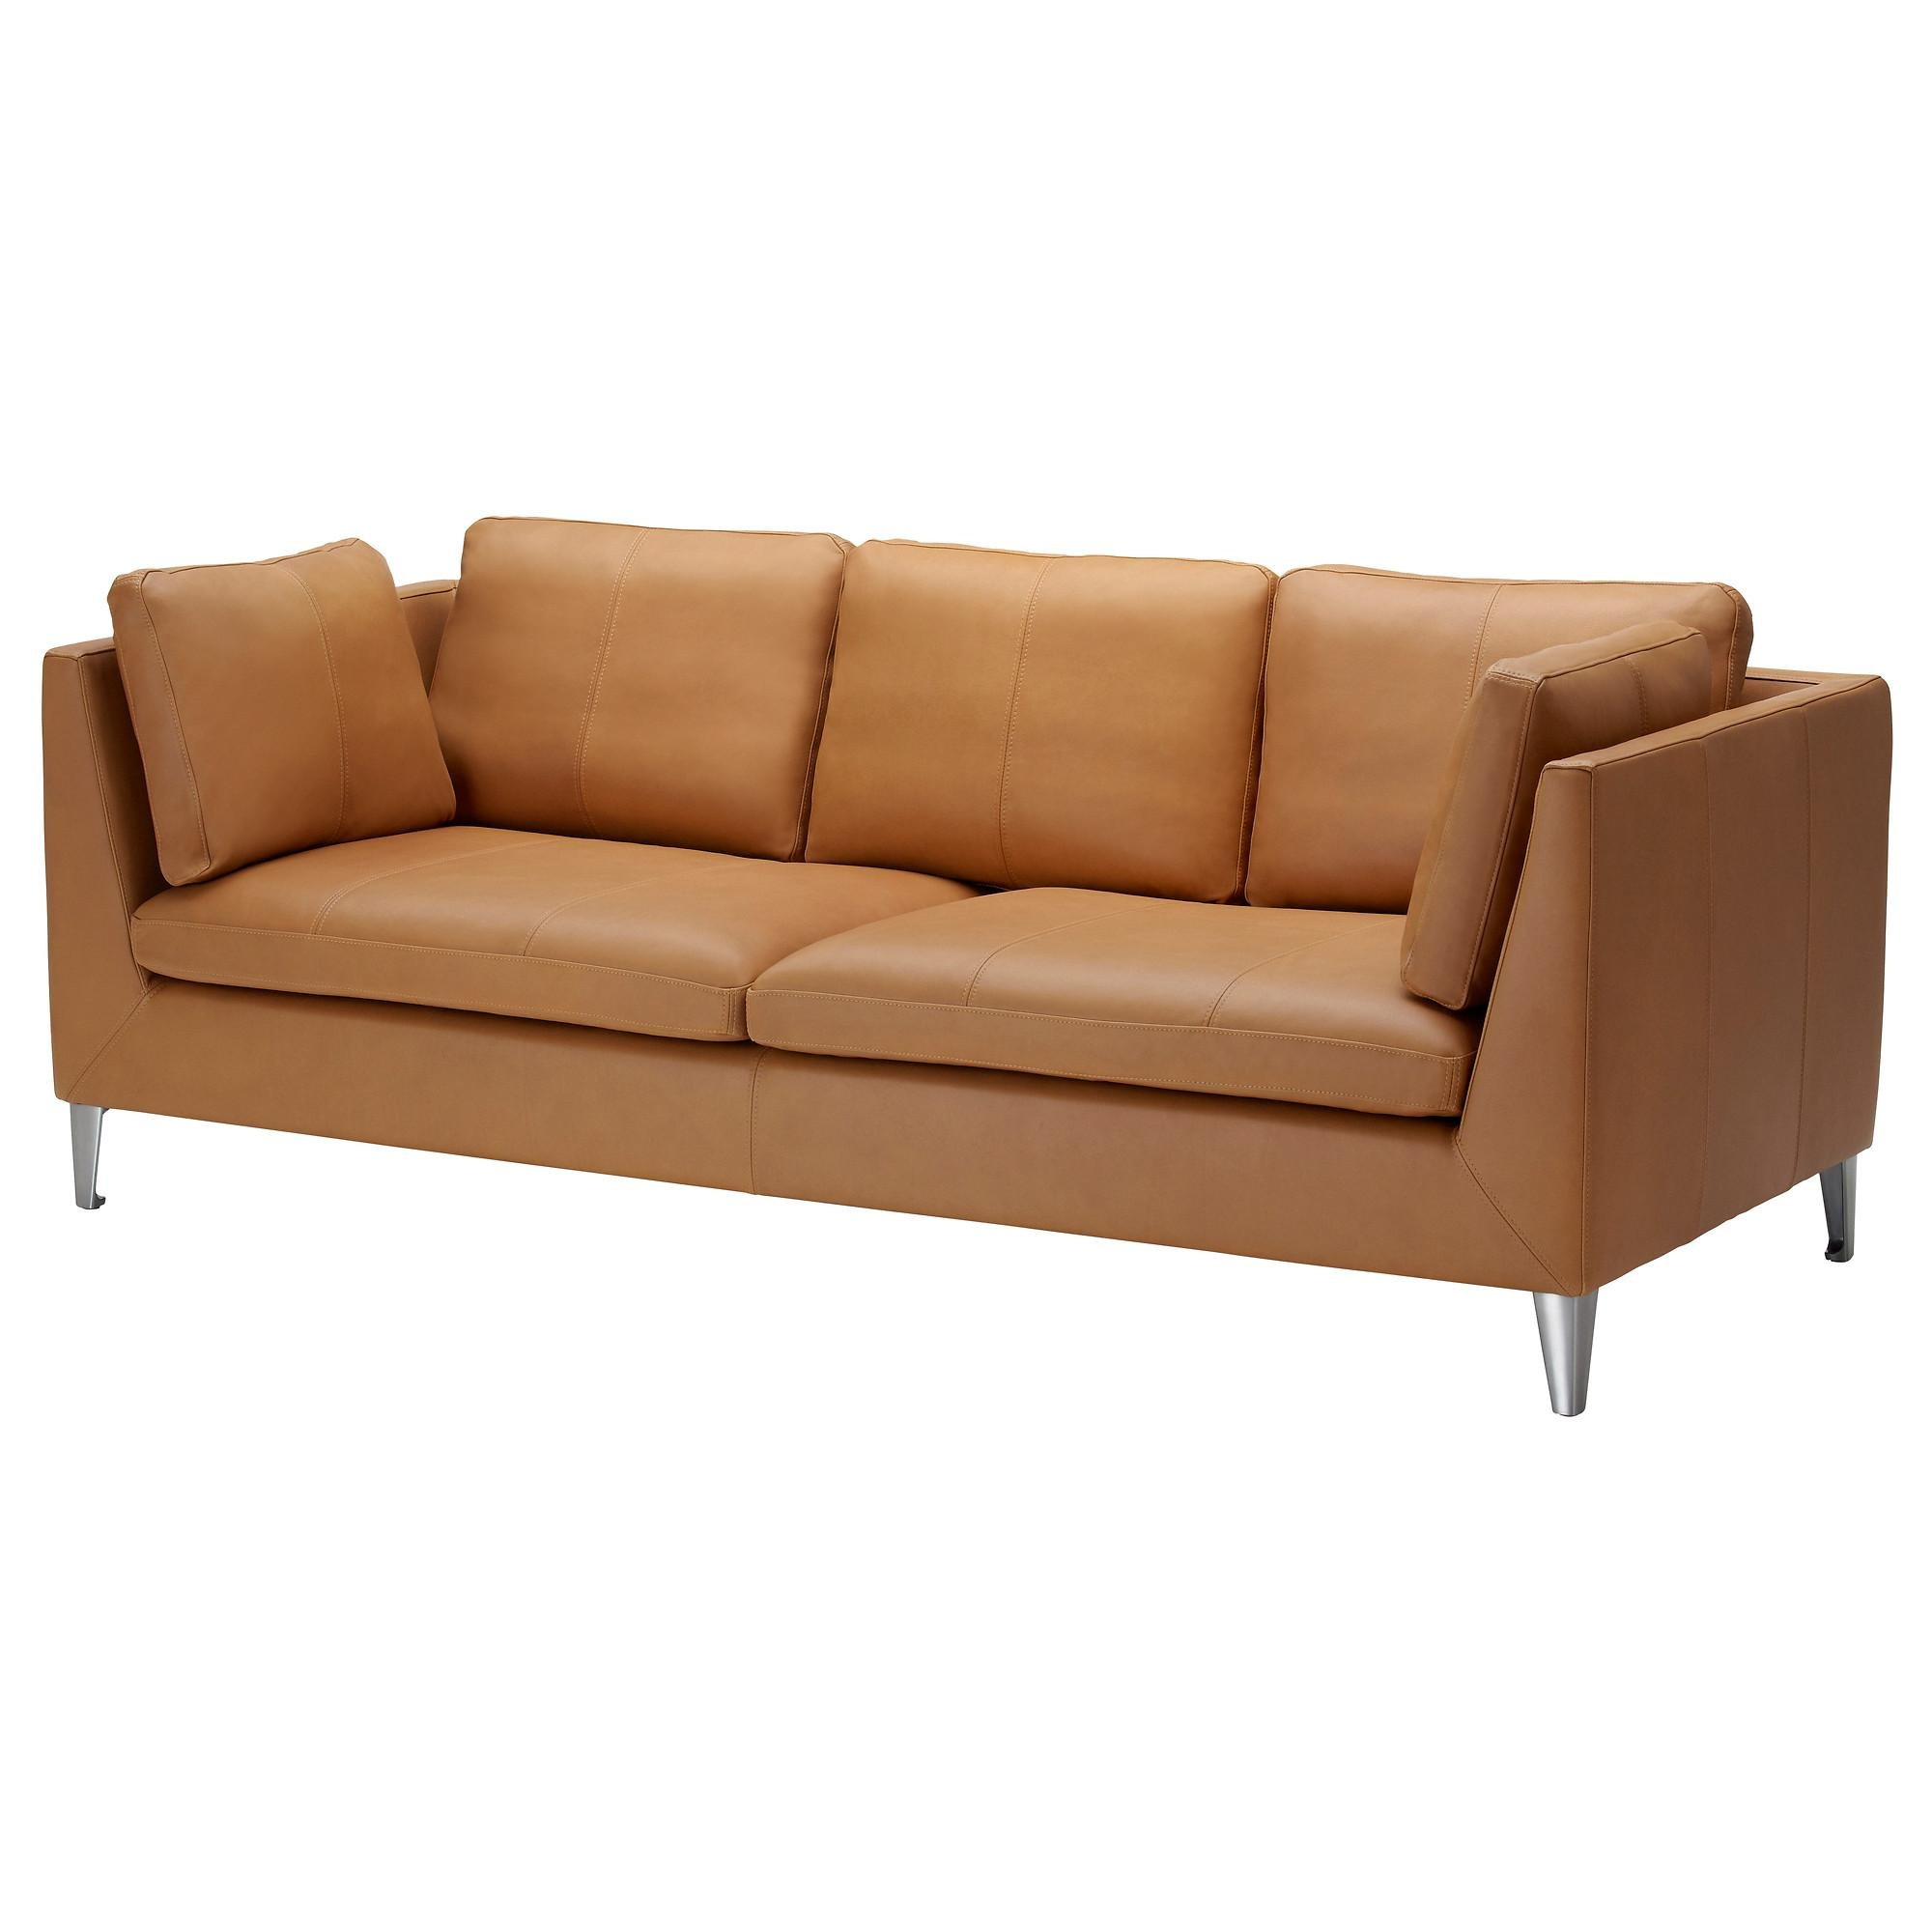 Leather & Faux Leather Couches, Chairs & Ottomans – Ikea With Ikea Loveseat Sleeper Sofas (View 11 of 20)